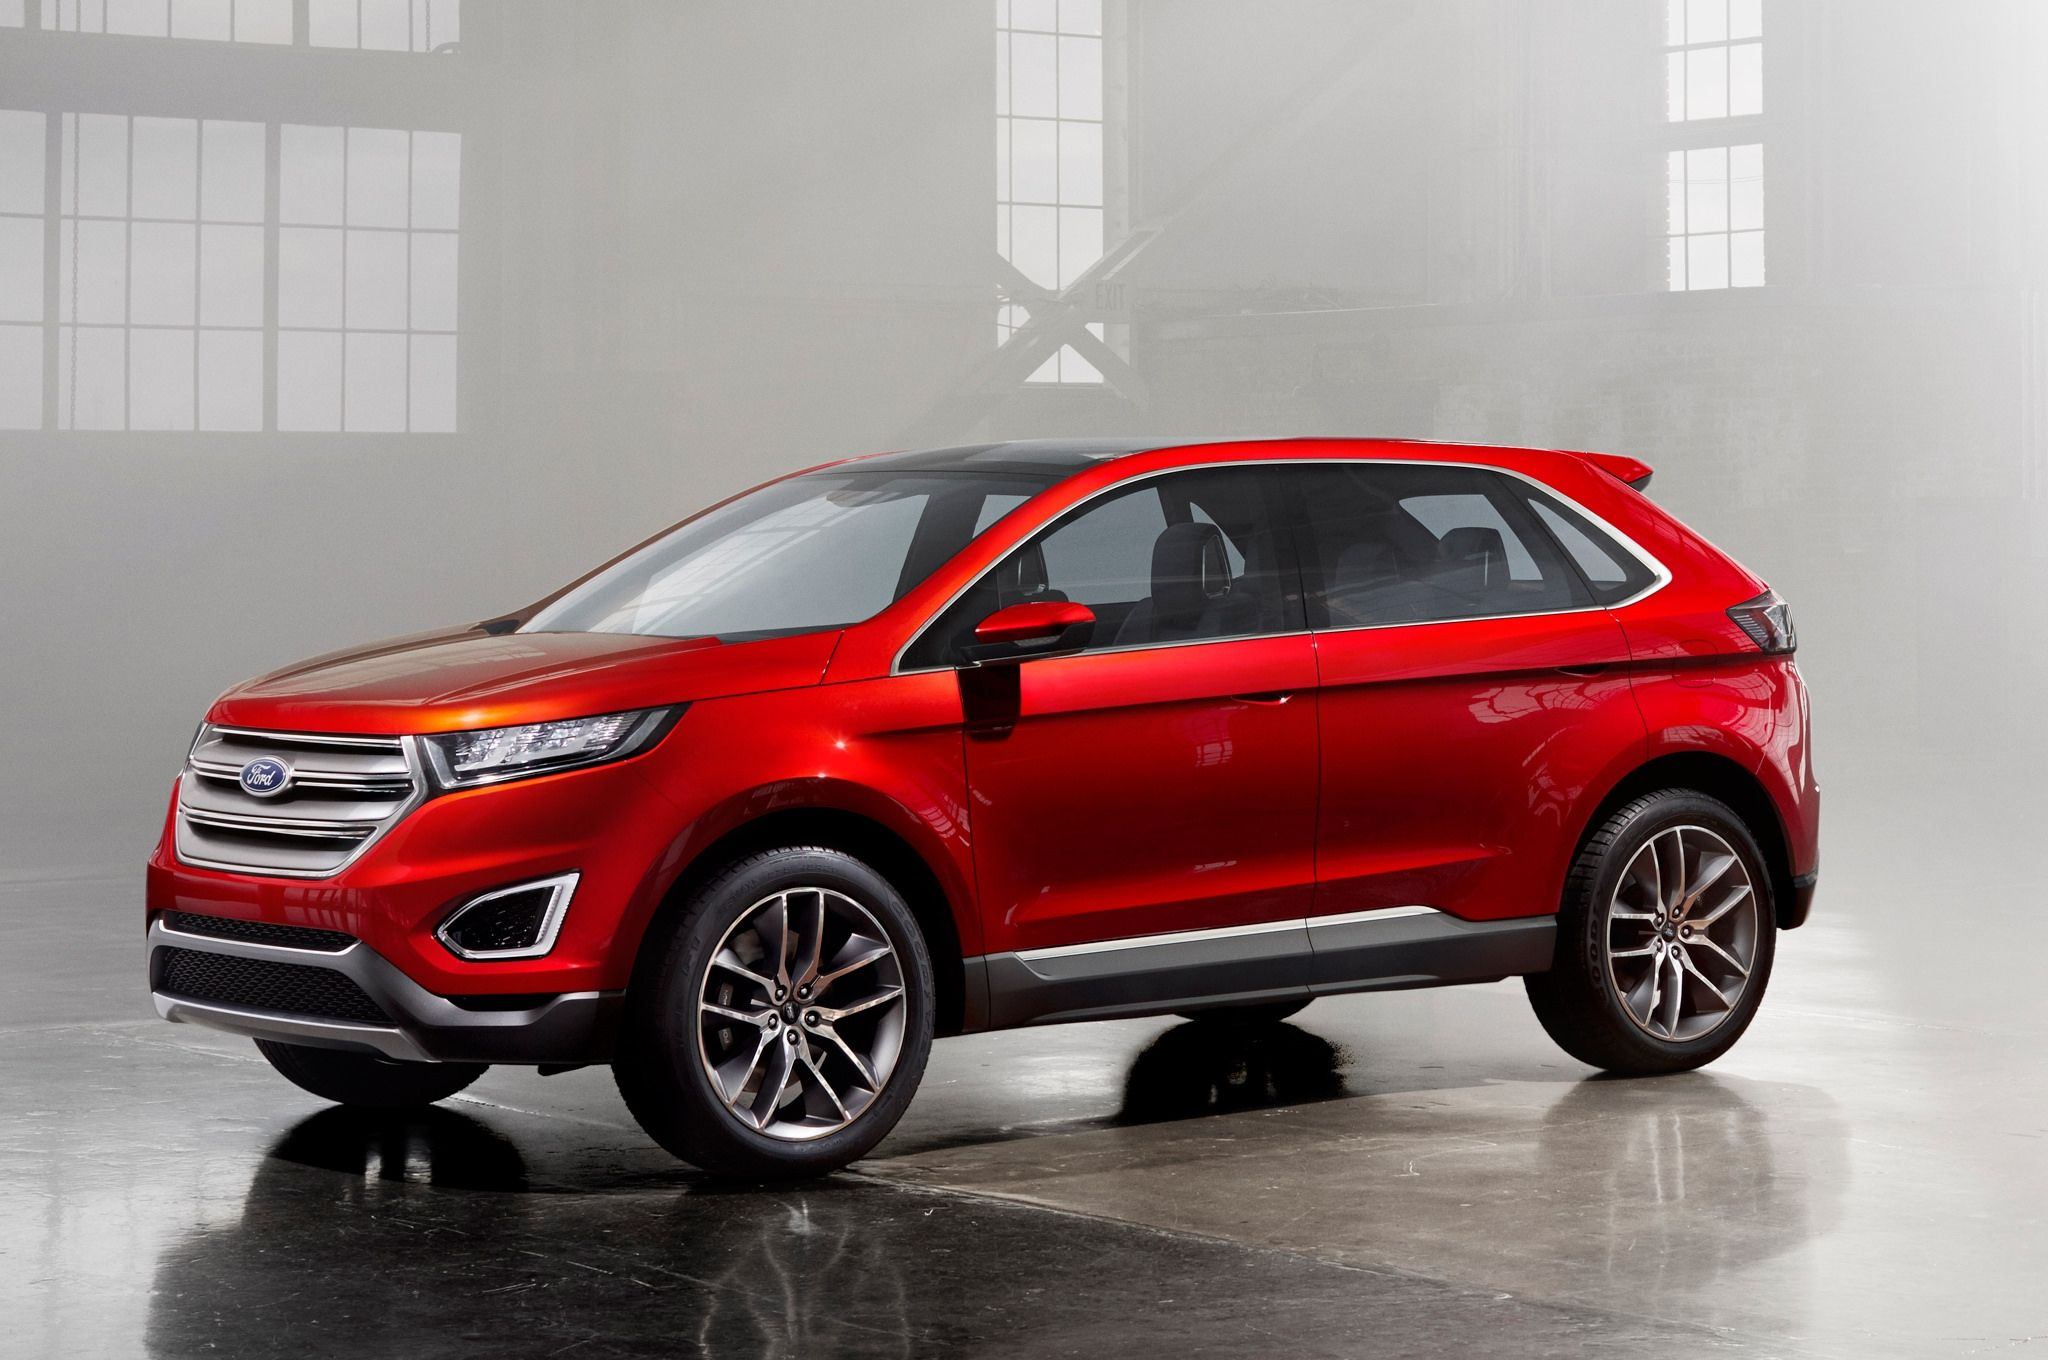 2016 Ford Edge Engine And Price Ford Edge 2016 Ford Edge Ford Kuga